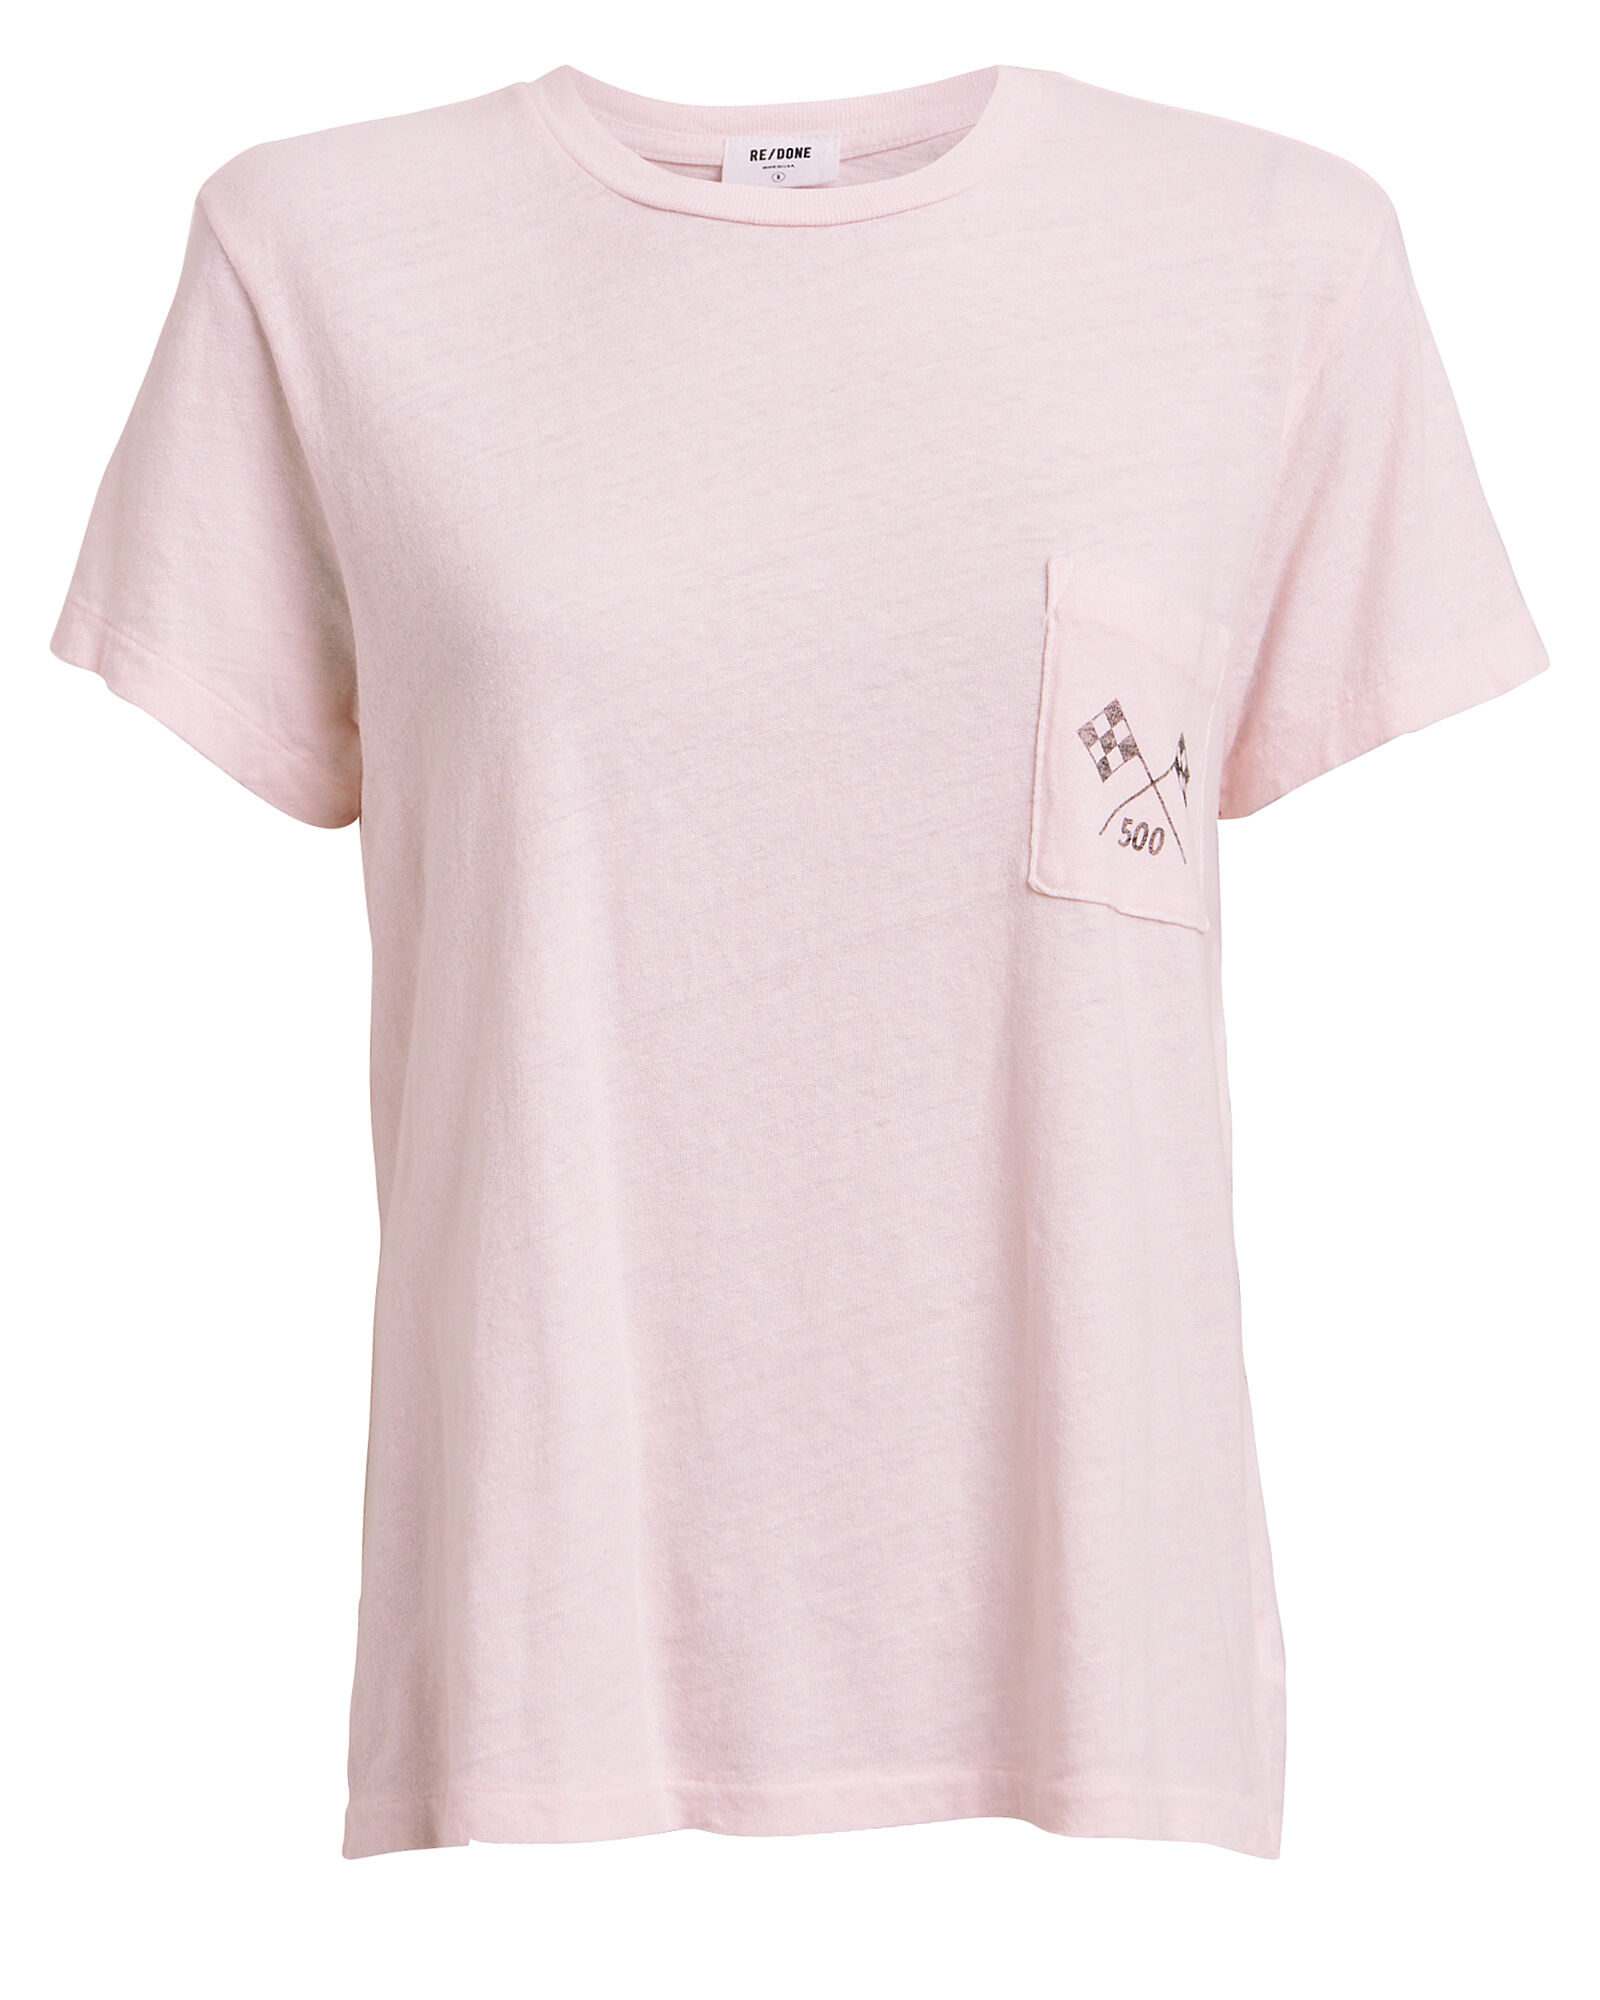 Boyfriend Graphic Jersey T-Shirt, PINK, hi-res